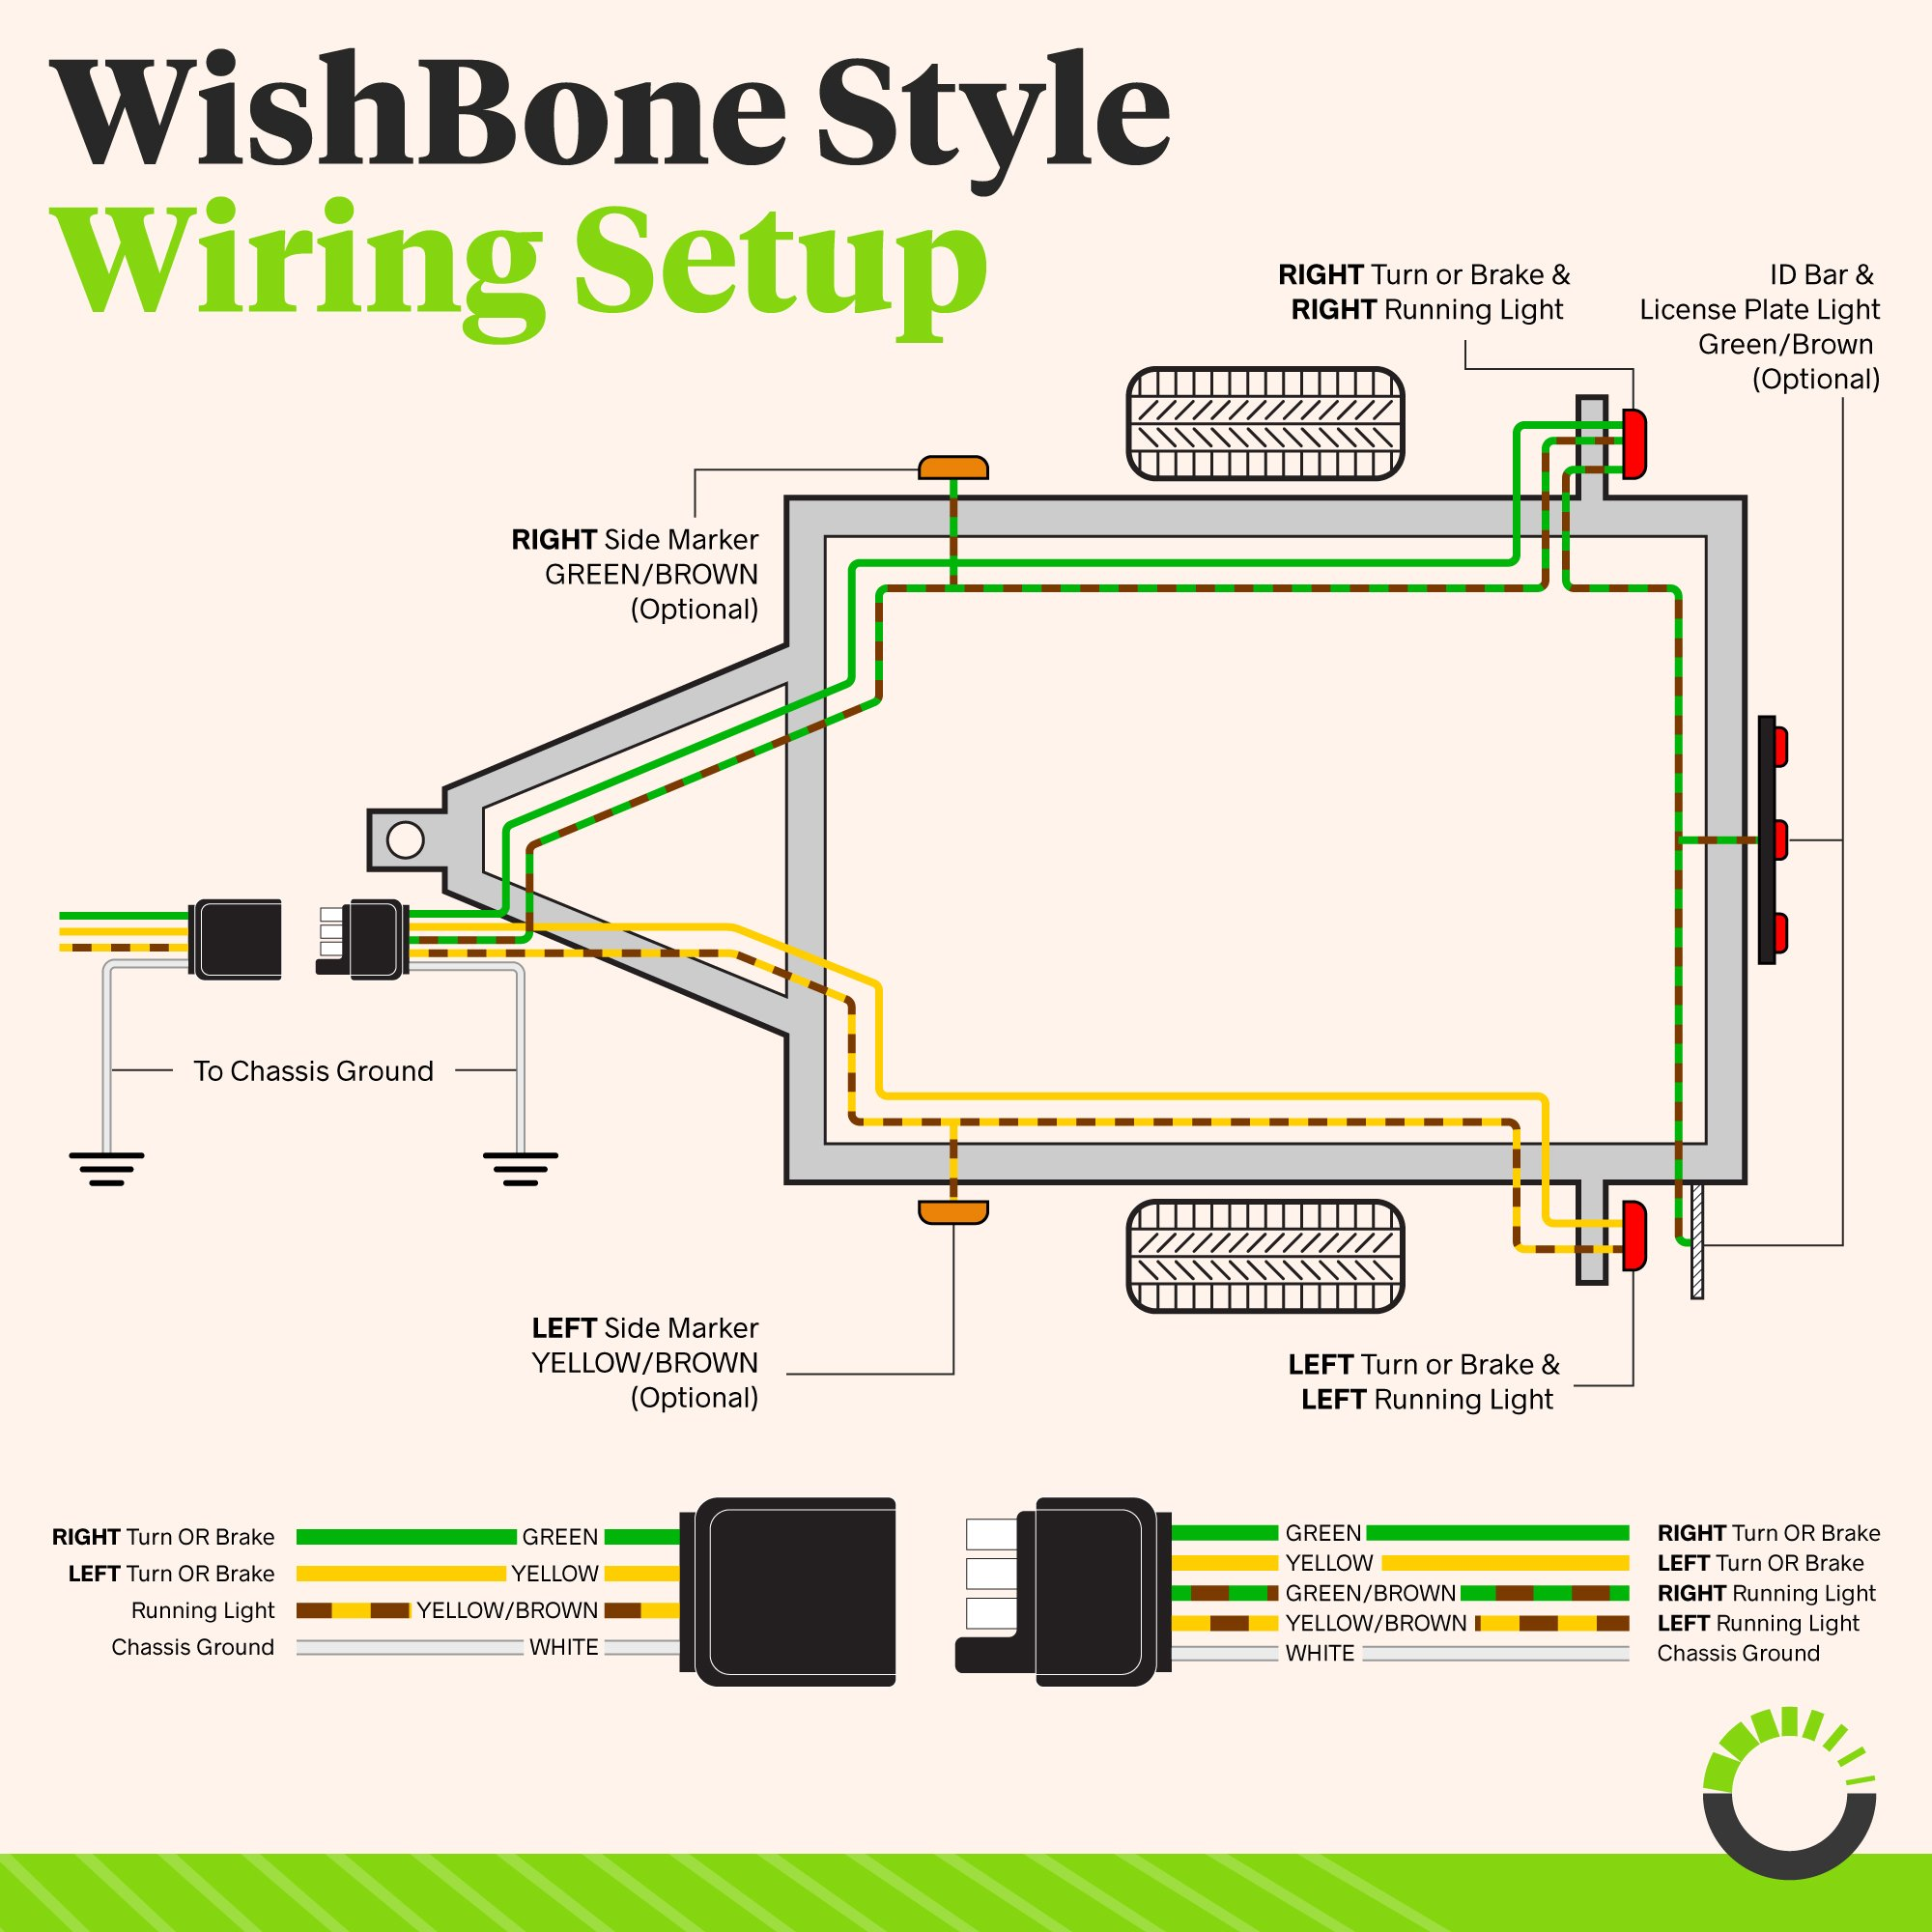 Online Led Store 4 Way Flat Wishbone Style Trailer Wiring Harness Cover Kit 25 Male Female 18 Awg Color Coded Wires Sae J1128 Rated With